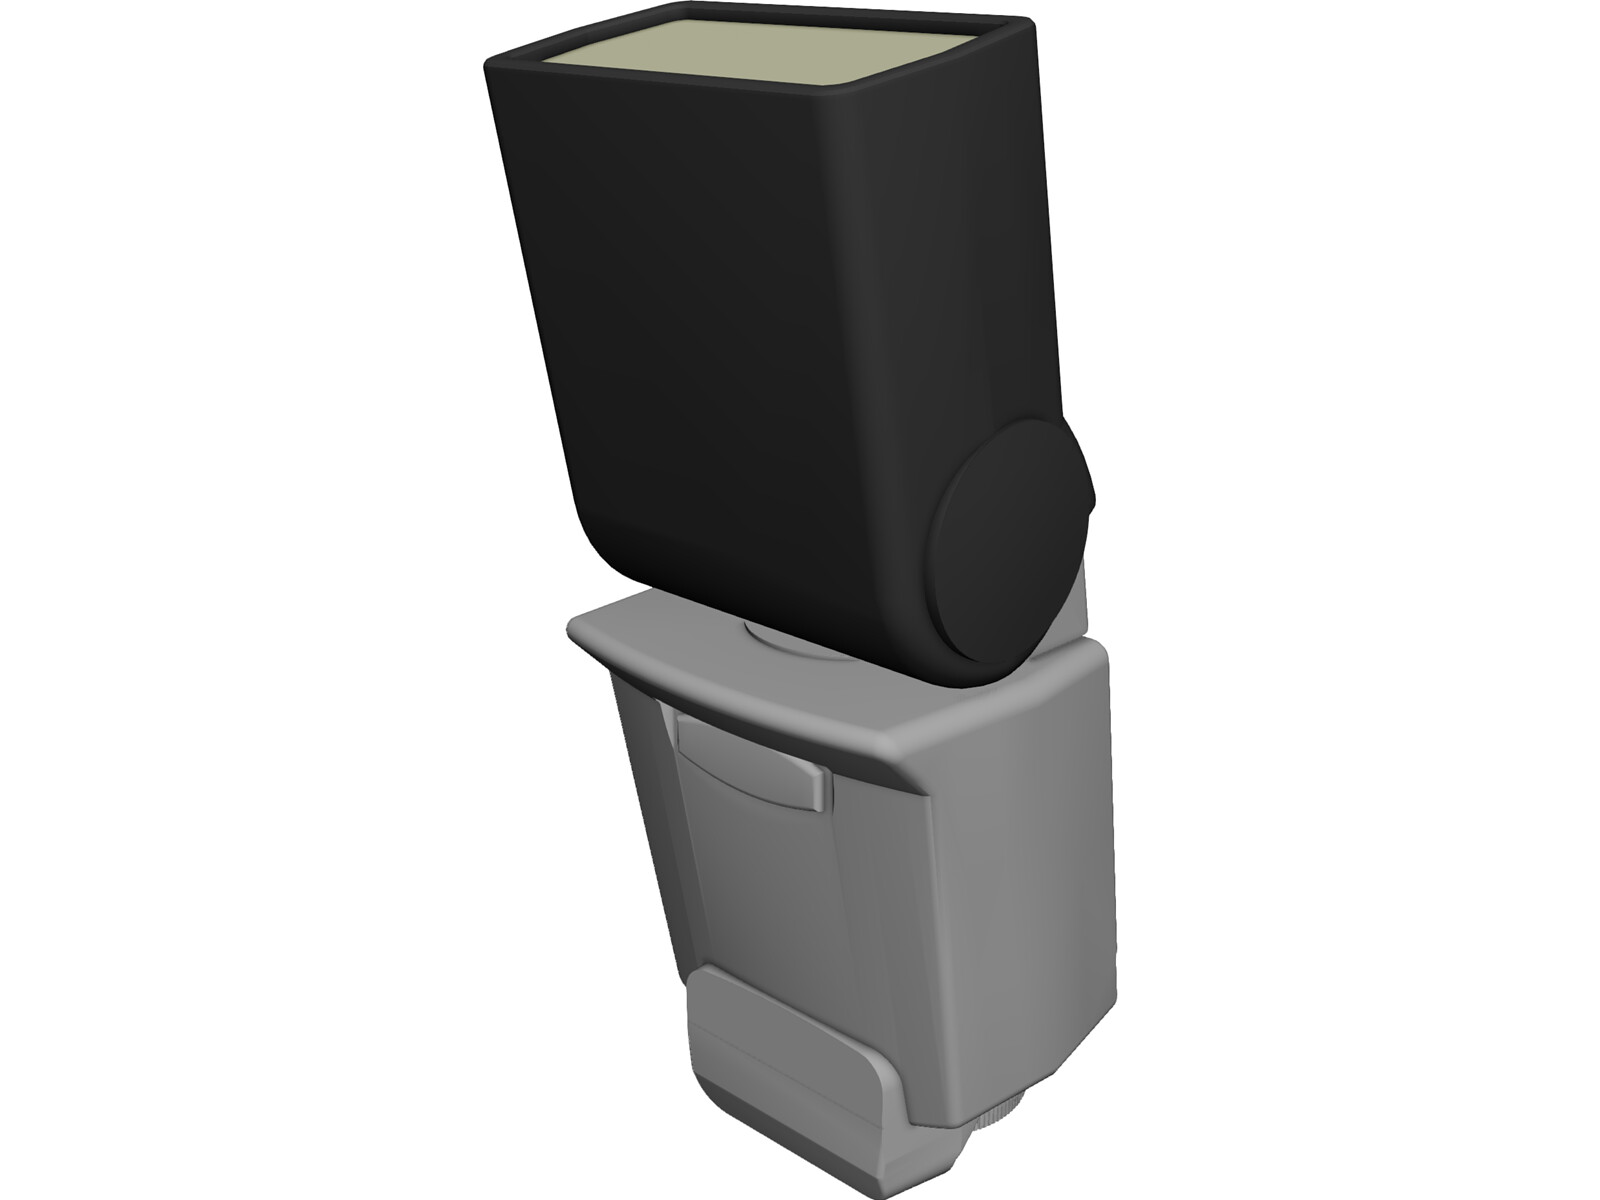 Canon 420 EX Camera Flash 3D CAD Model